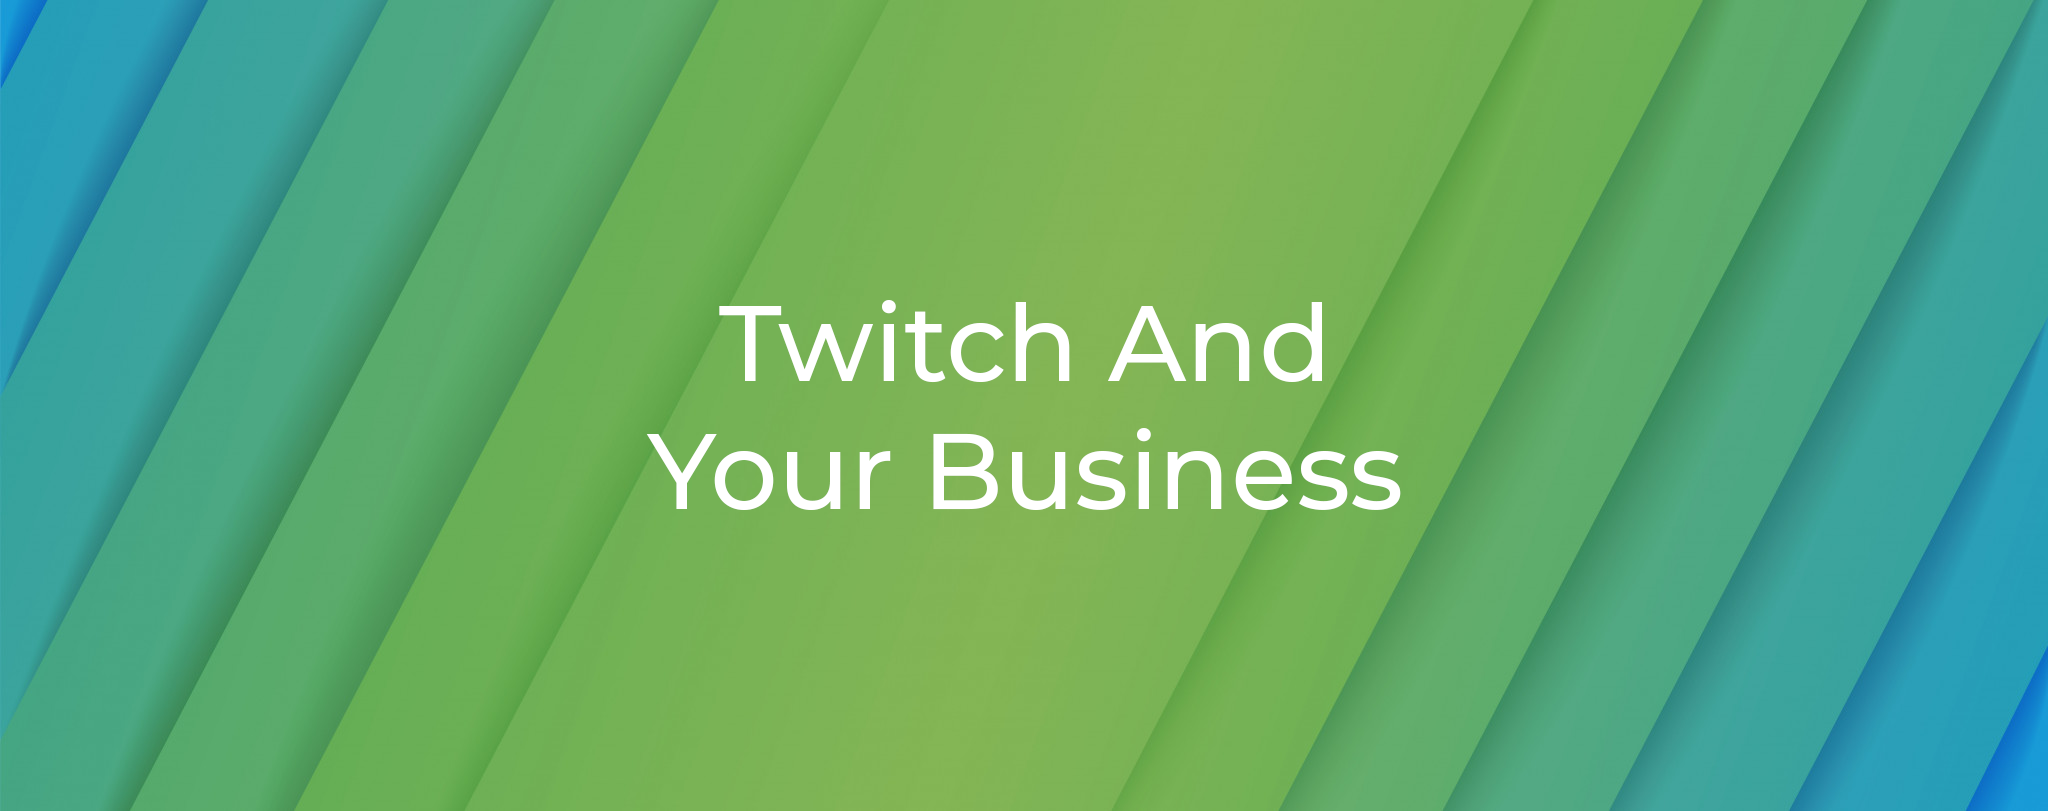 Twitch And Your Business